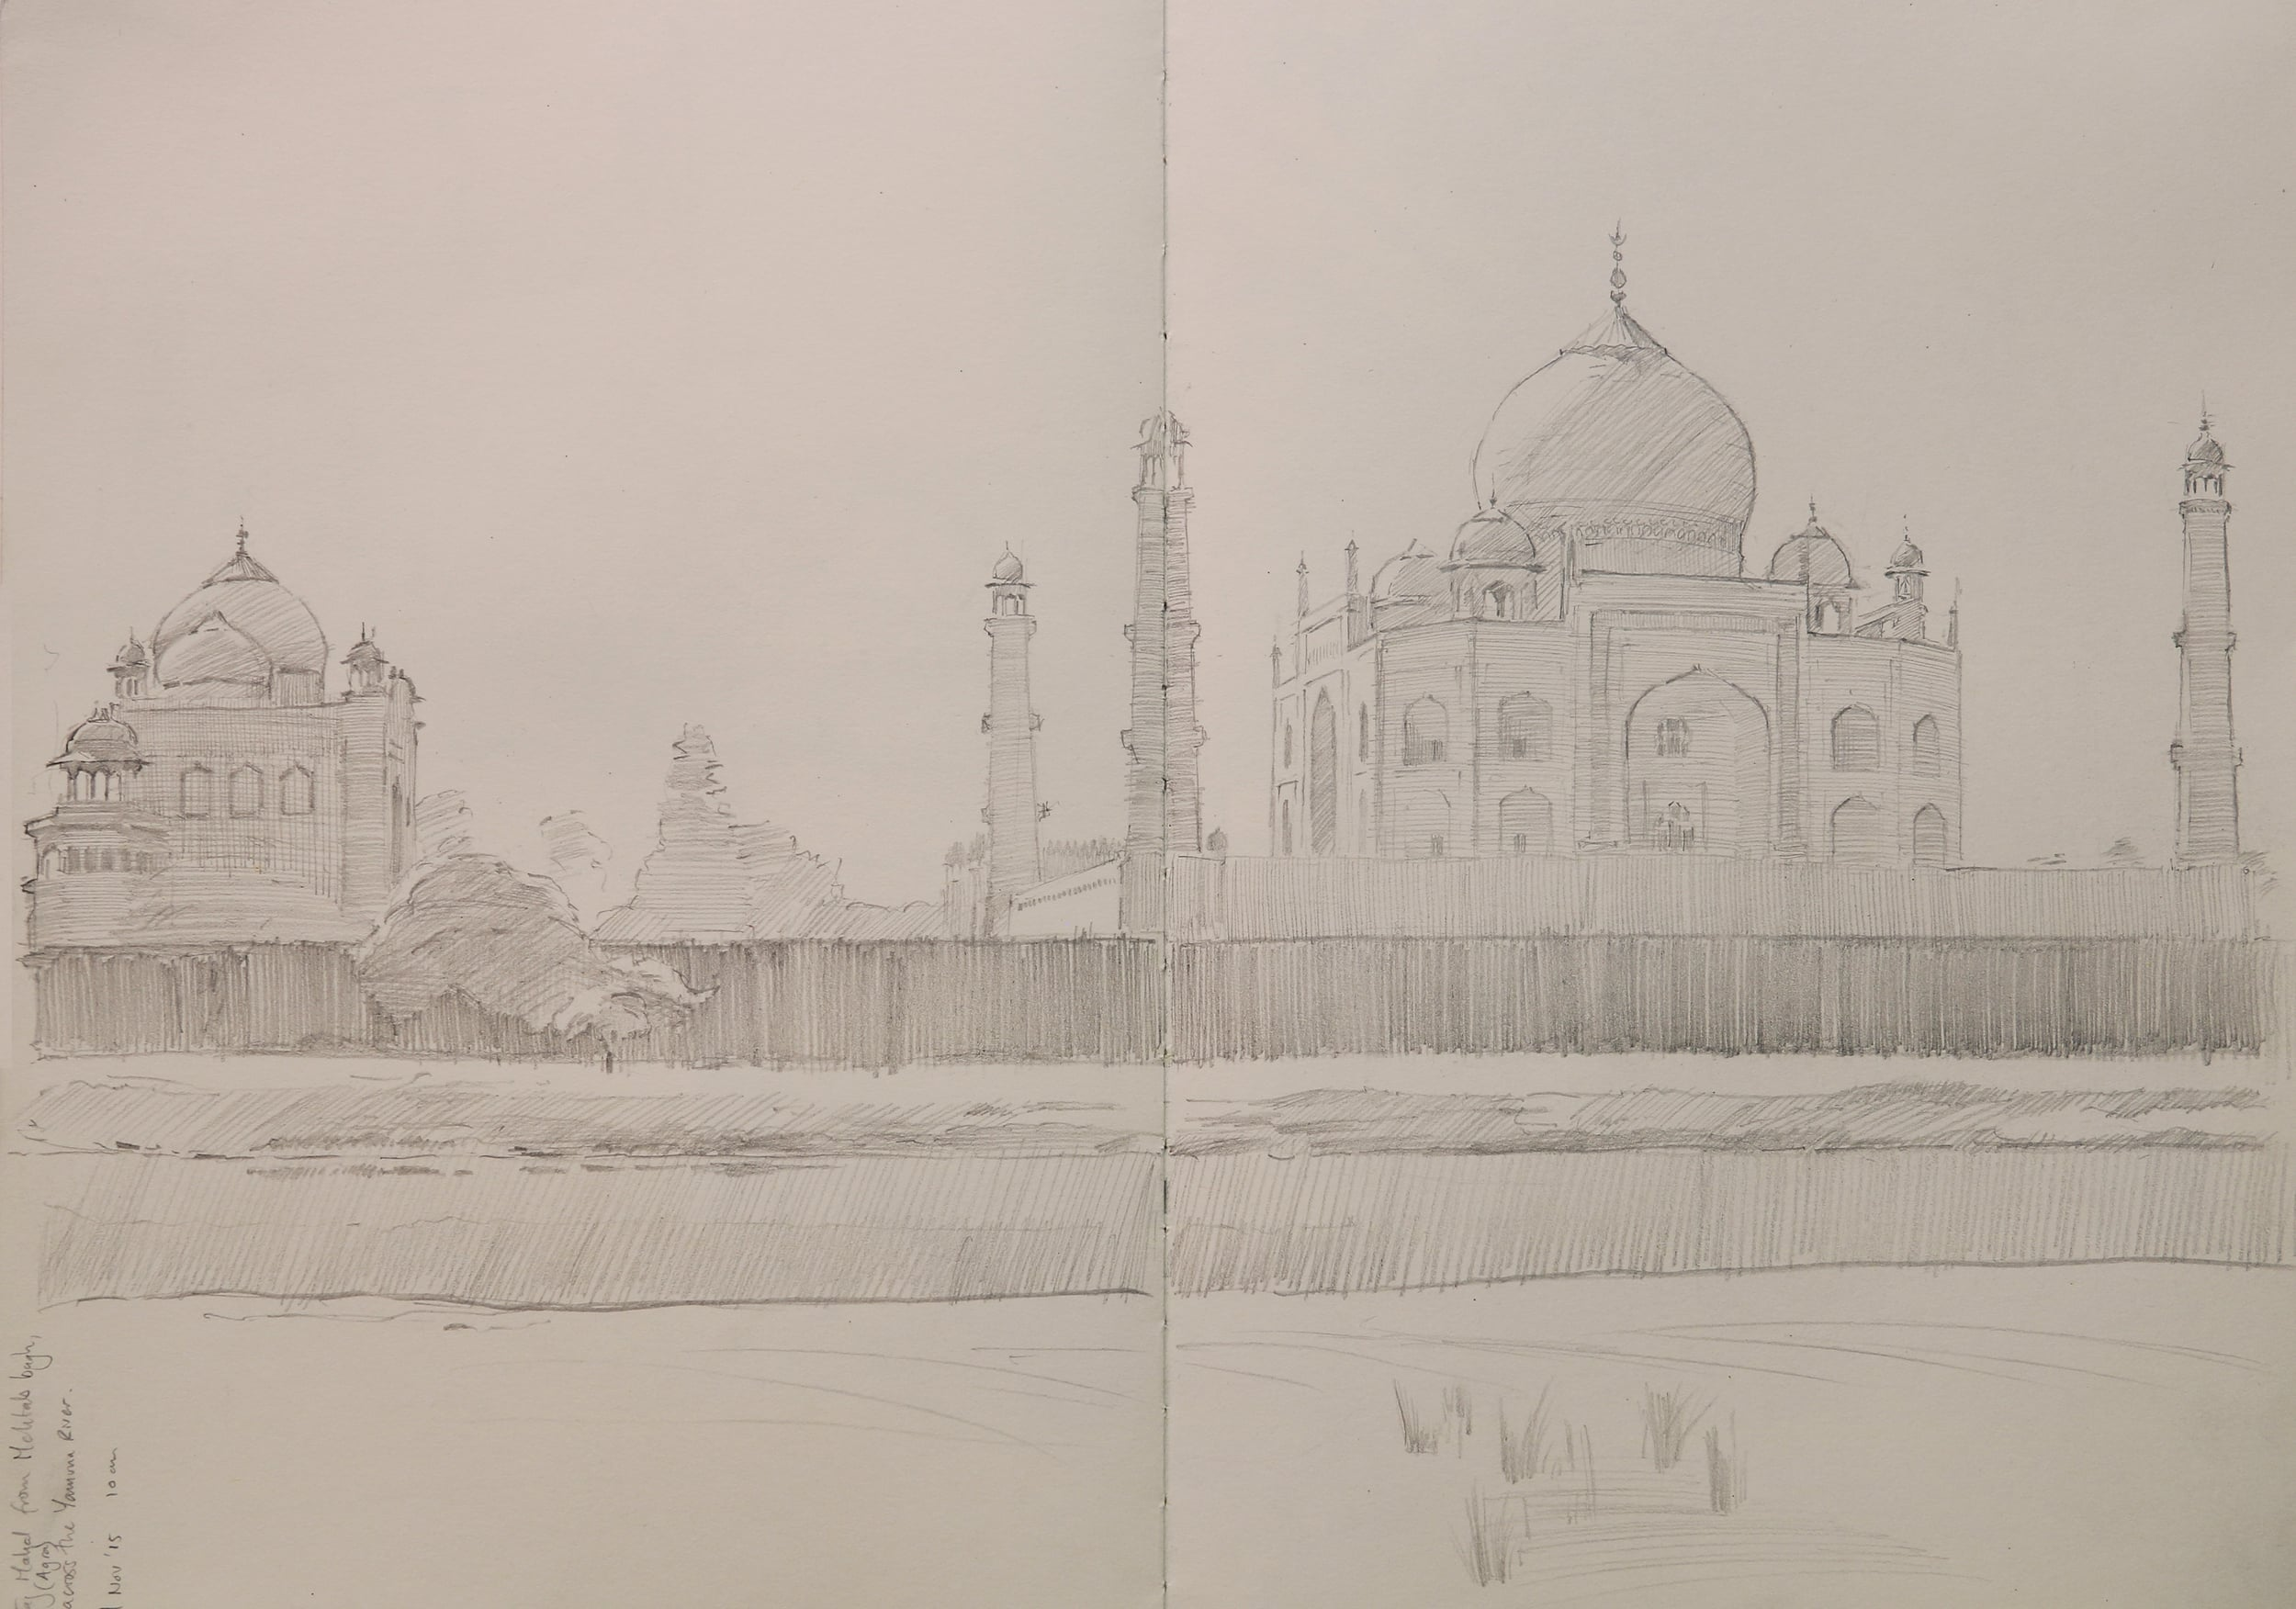 Taj Mahal pencil sketch, from Mehtab Bahg.